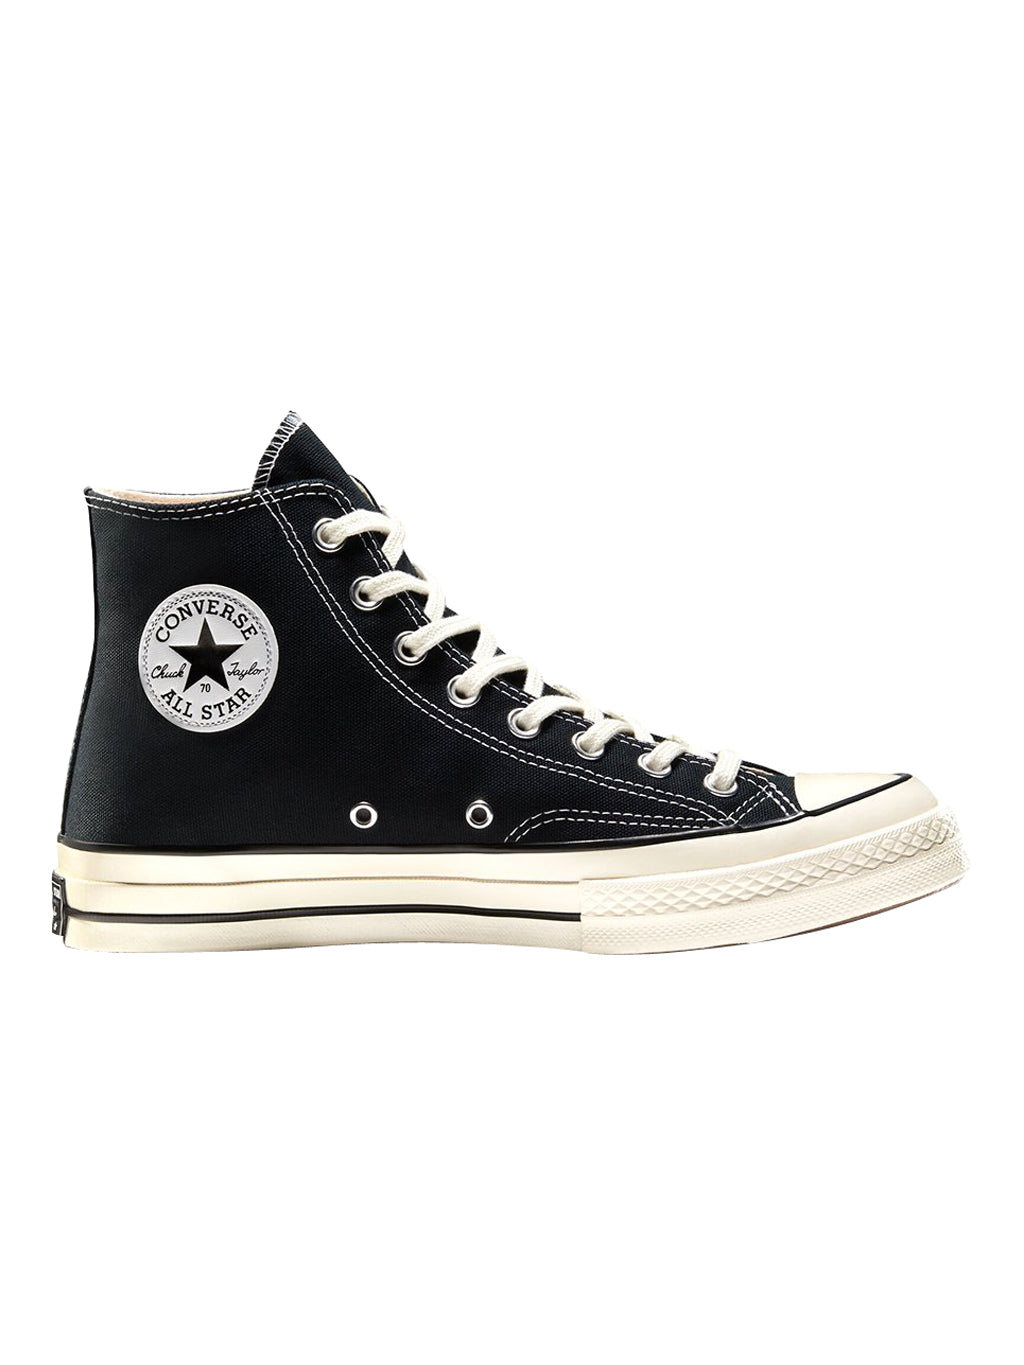 Black Chuck 70 Hi Sneakers